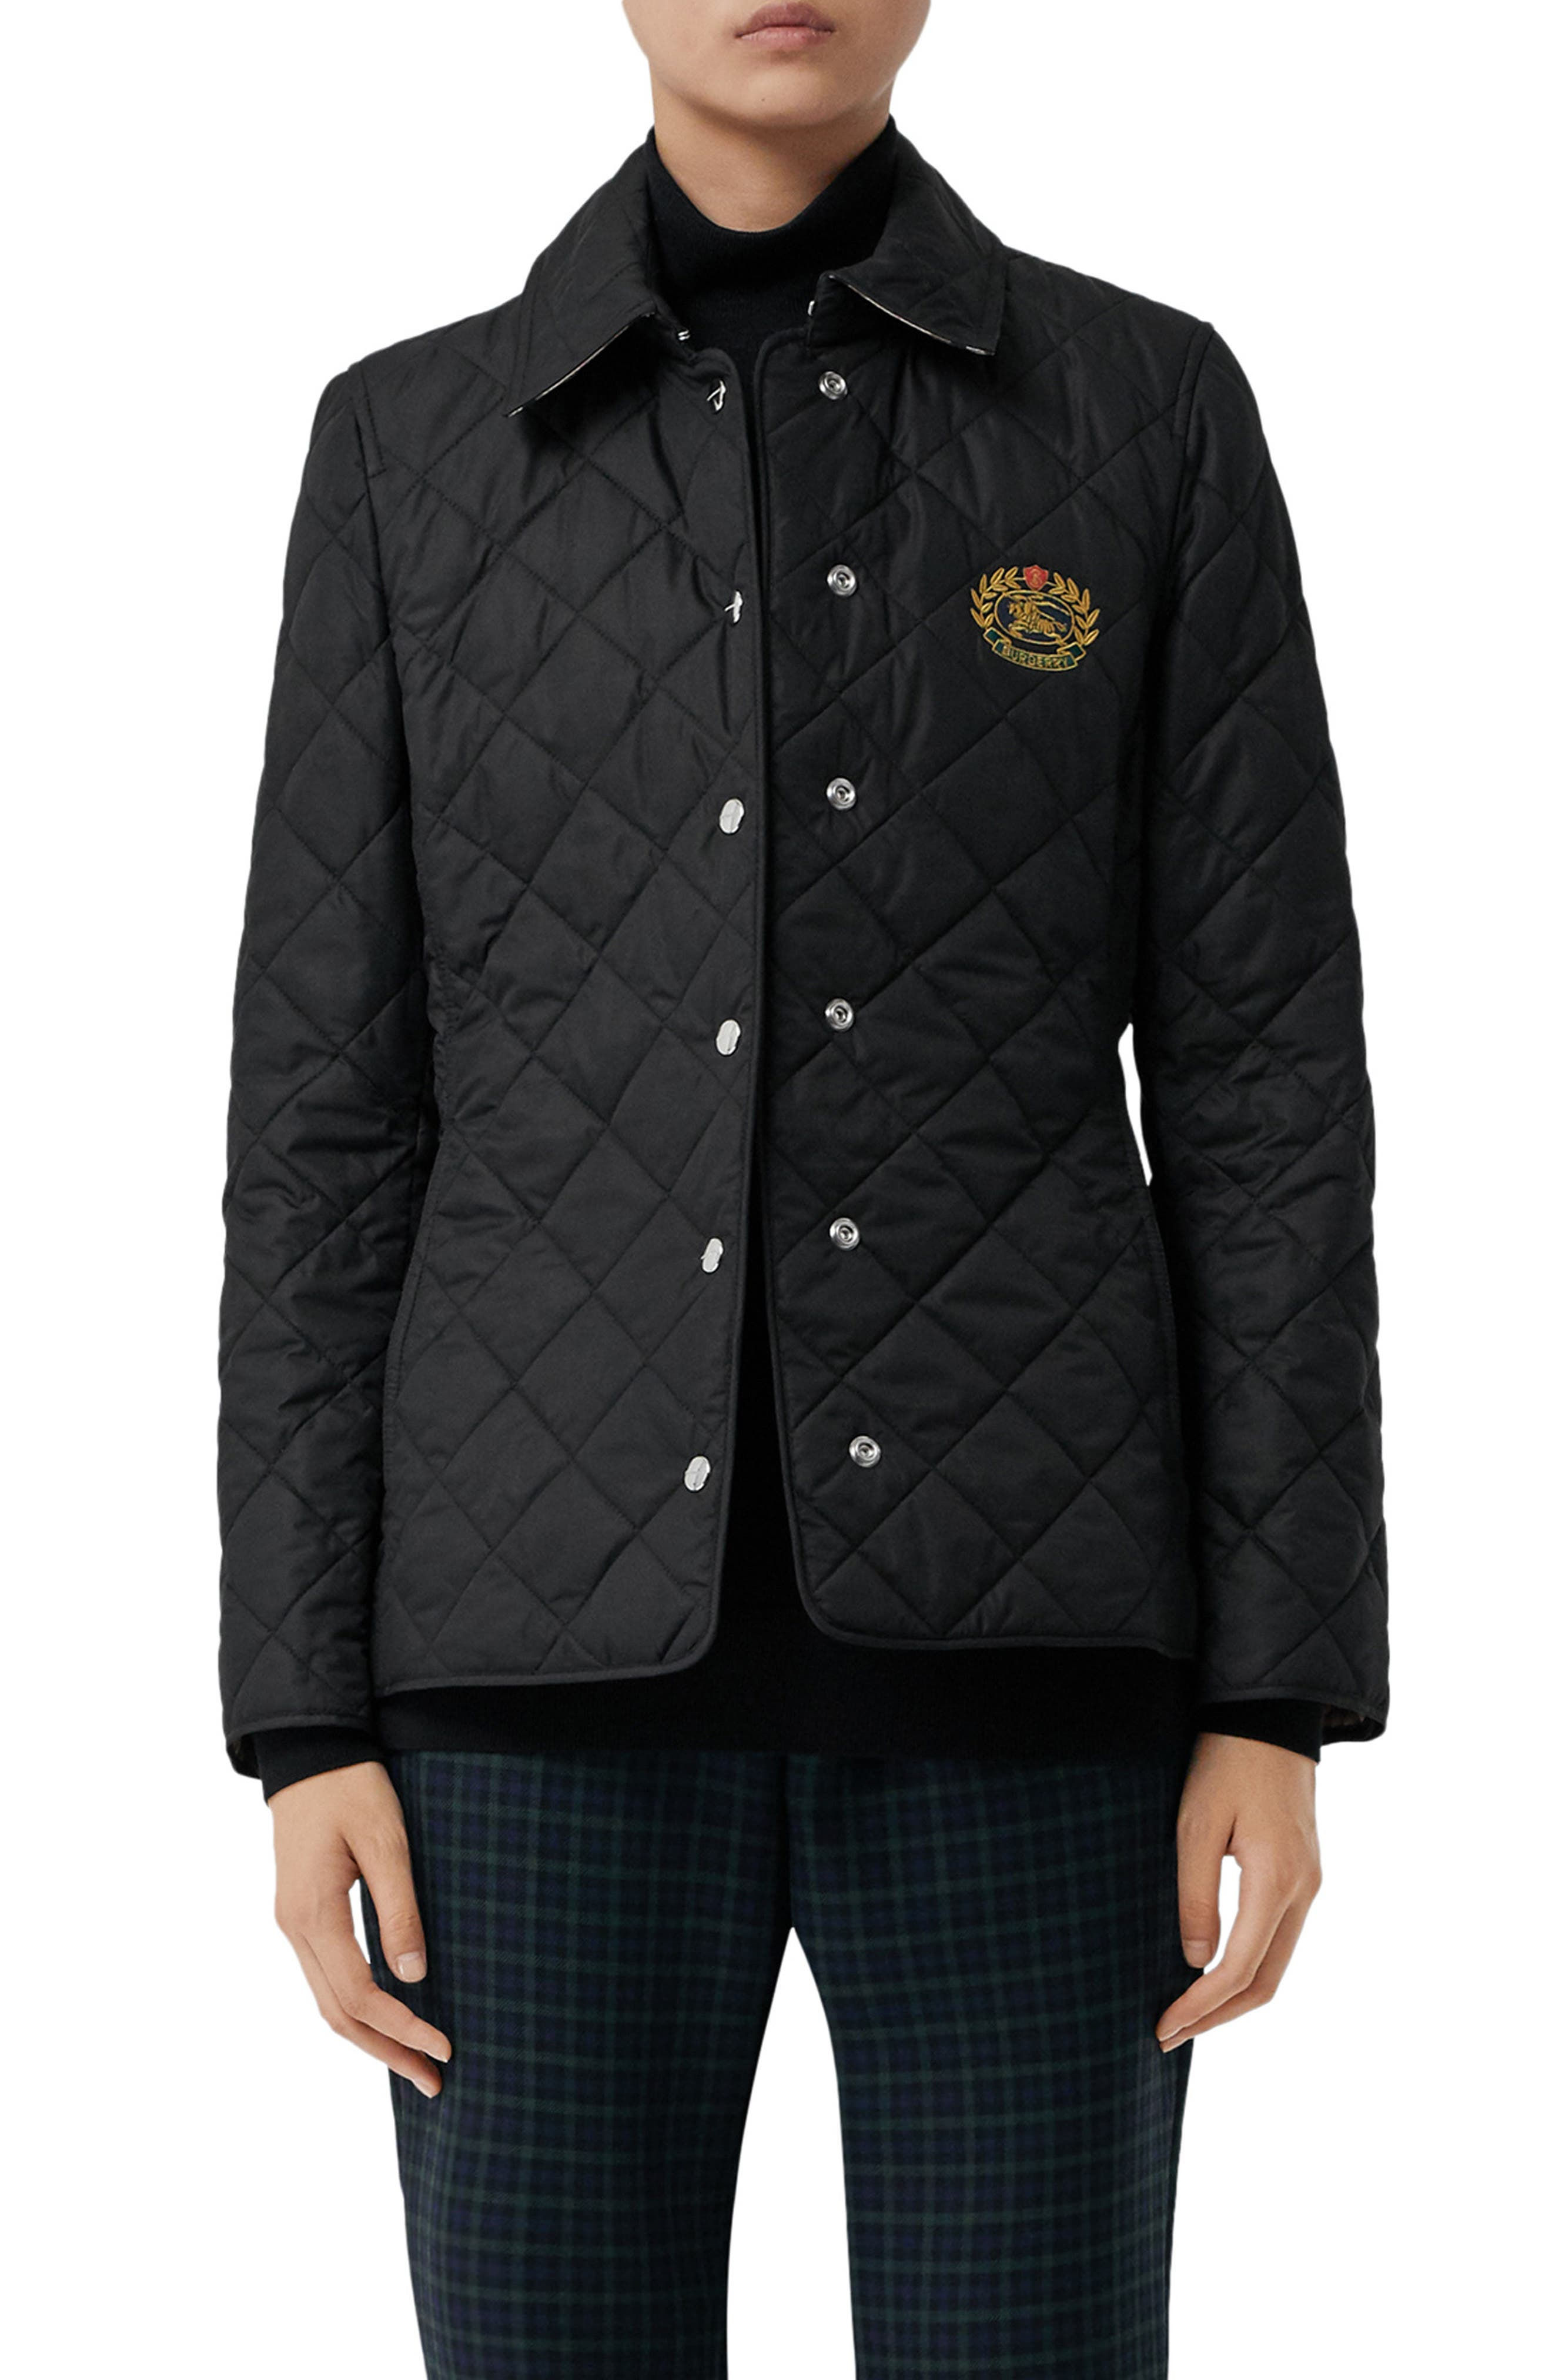 Franwell Diamond Quilted Jacket,                         Main,                         color, BLACK